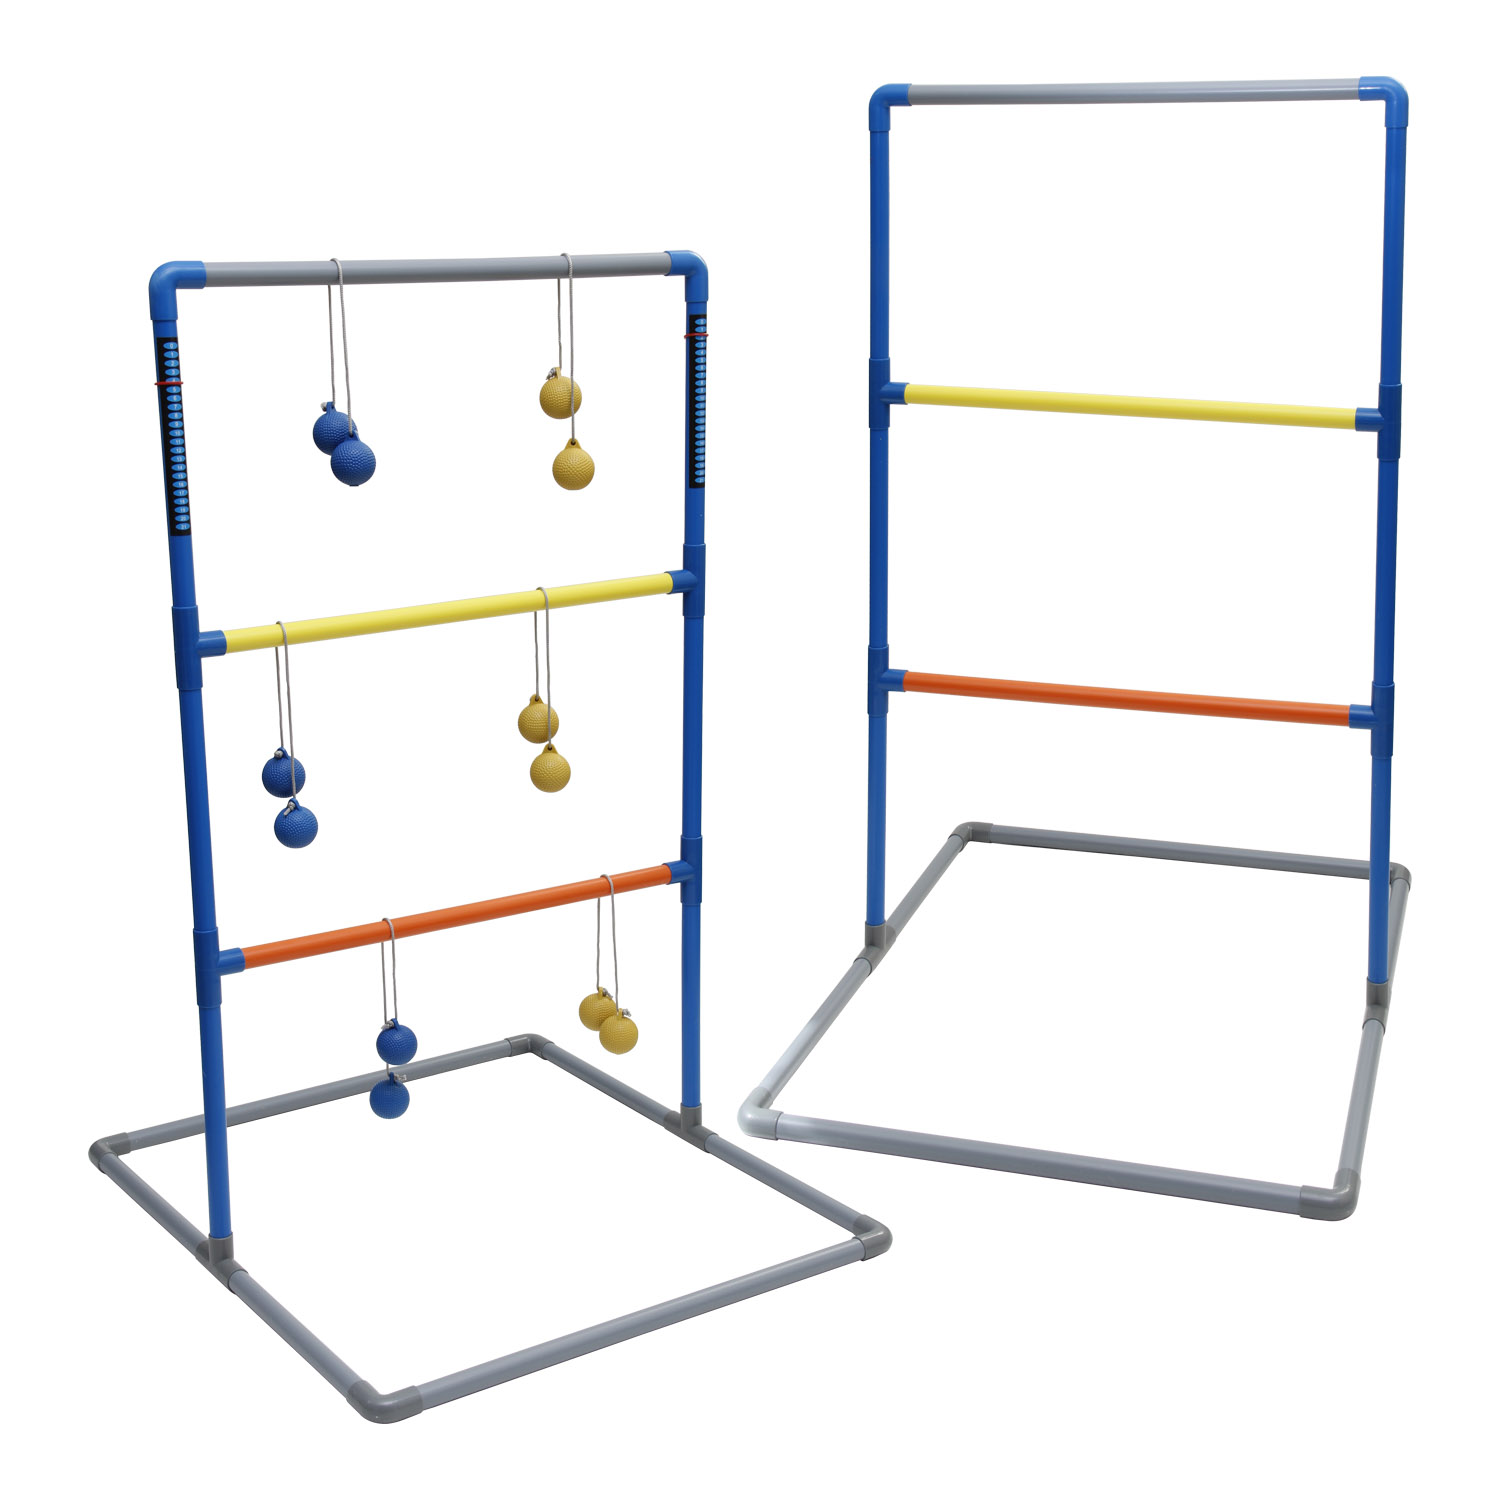 Verus Sports Vintage Chuck-a-Ball Ladder Toss